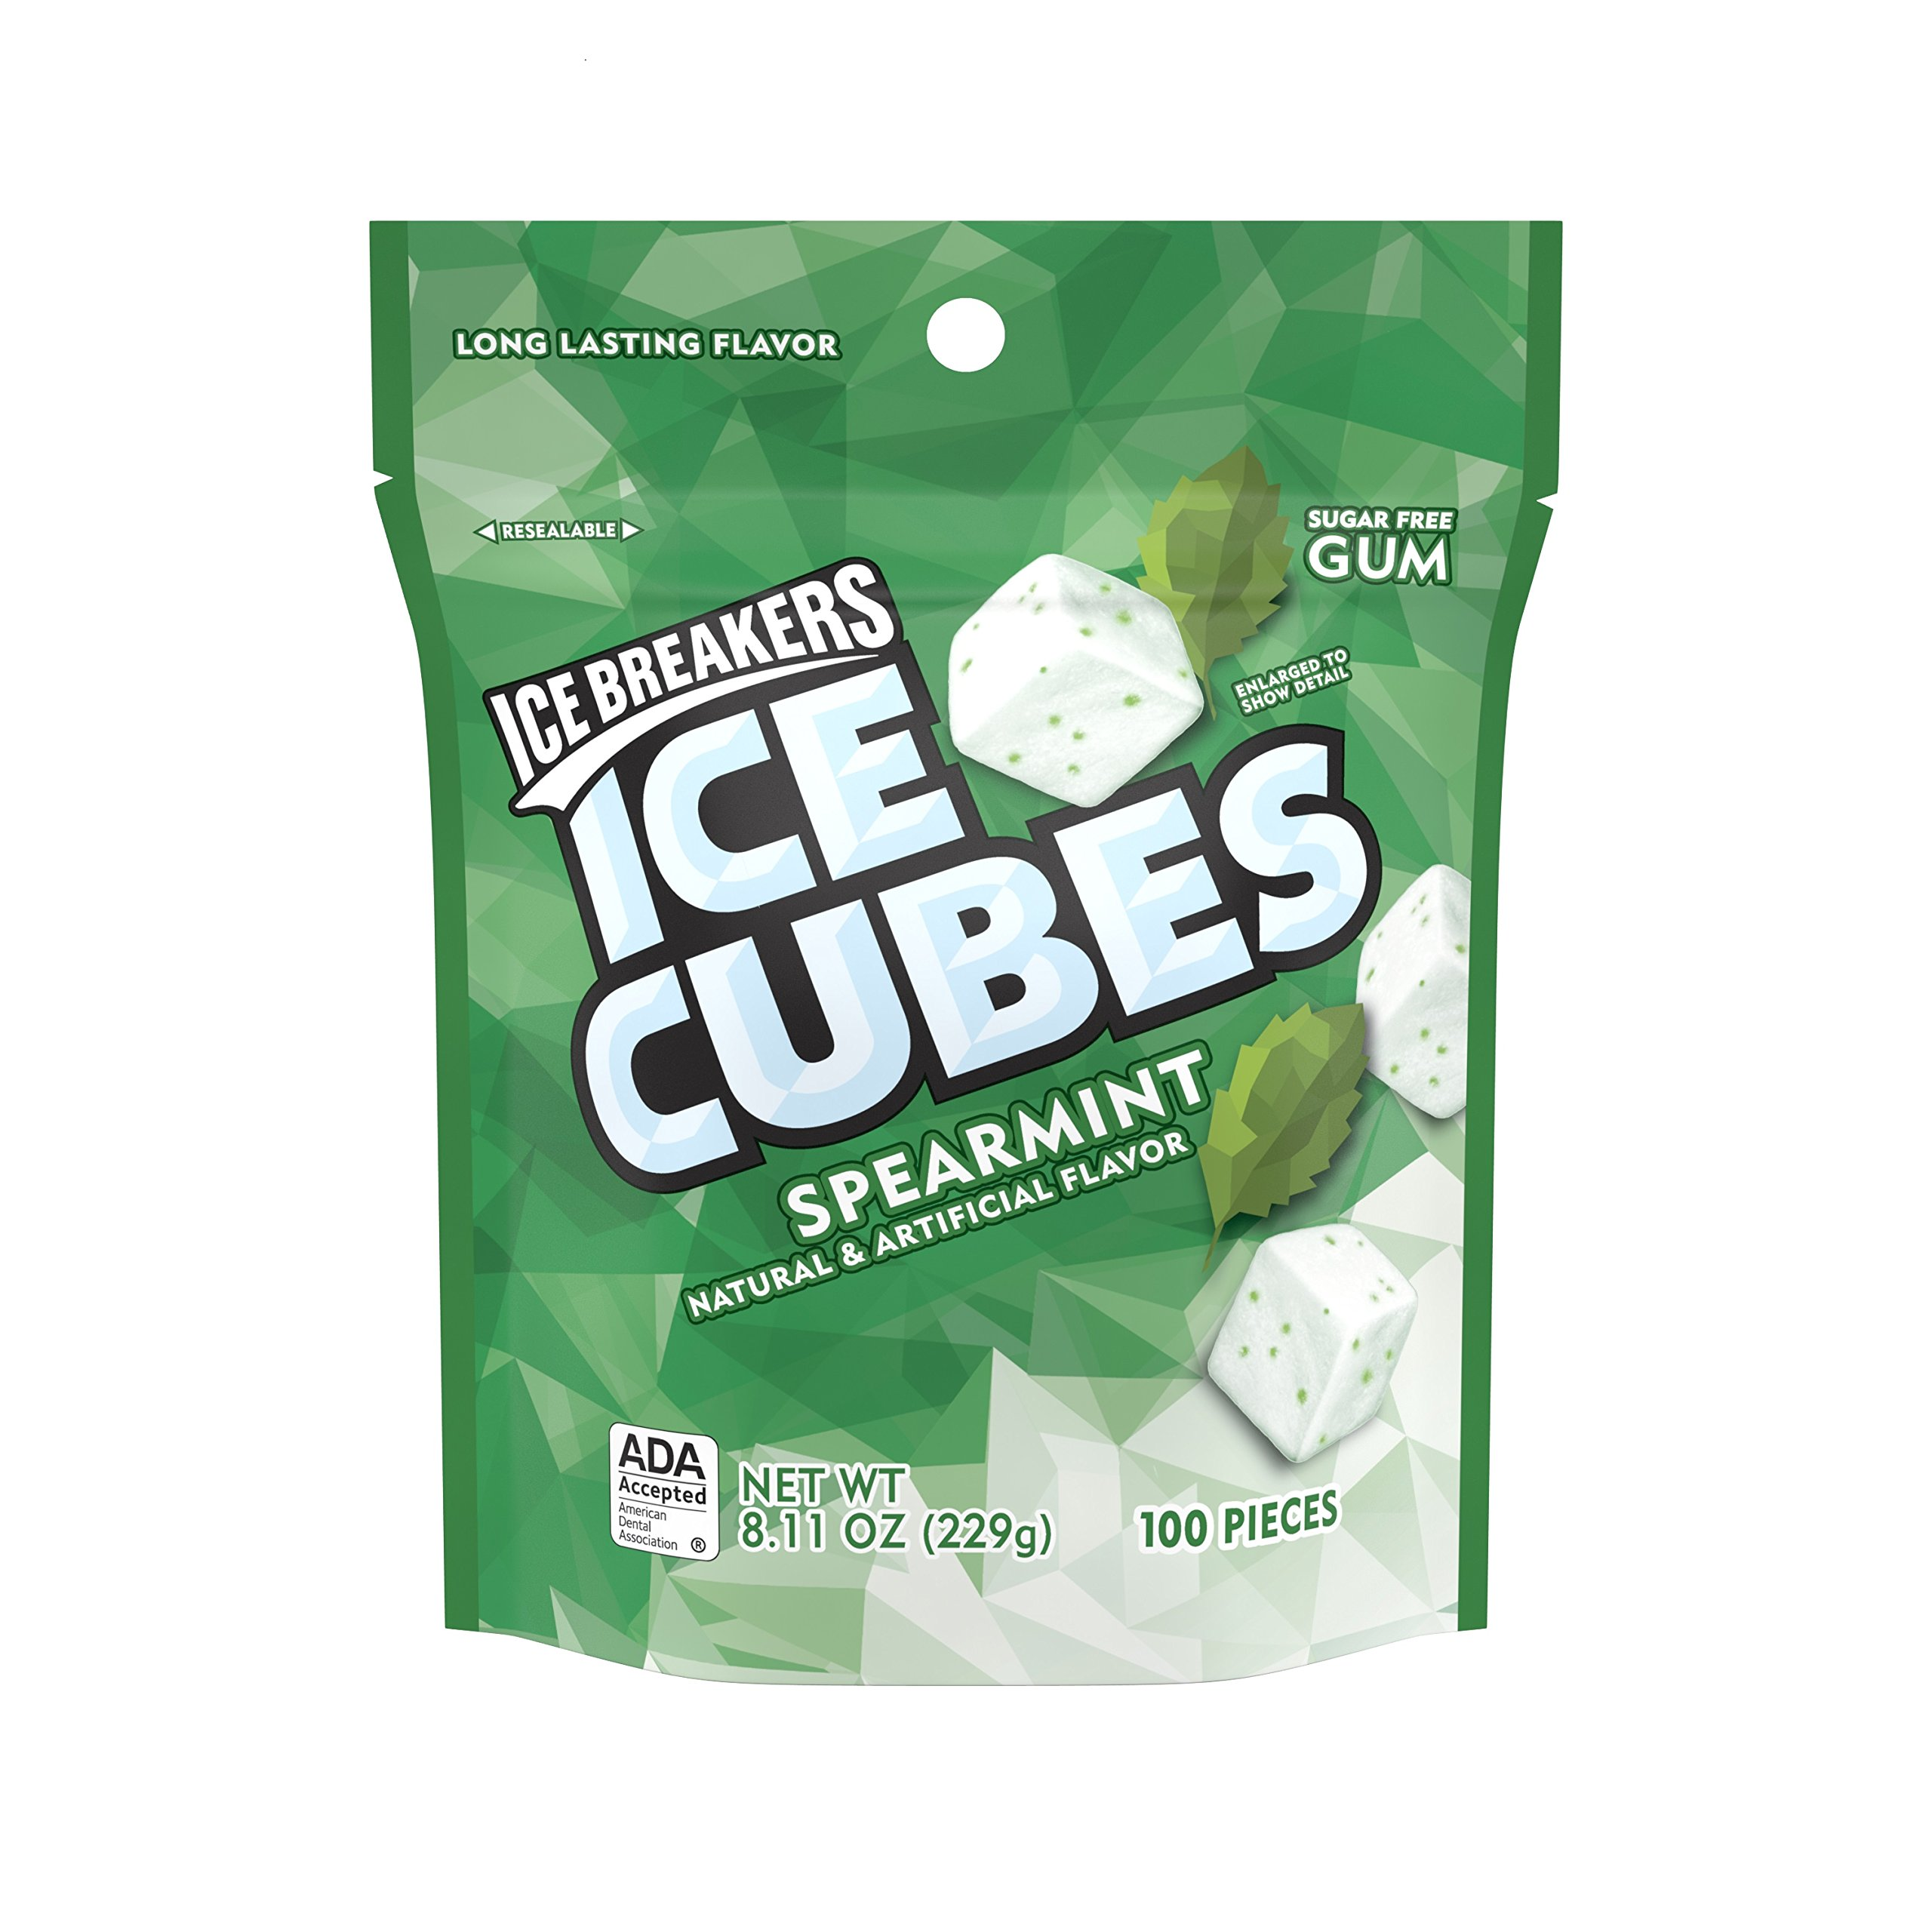 Ice Breakers Gum, Sugar Free Ice Cubes with Xylitol, Spearmint, 100 Piece Pouch by Ice Breakers